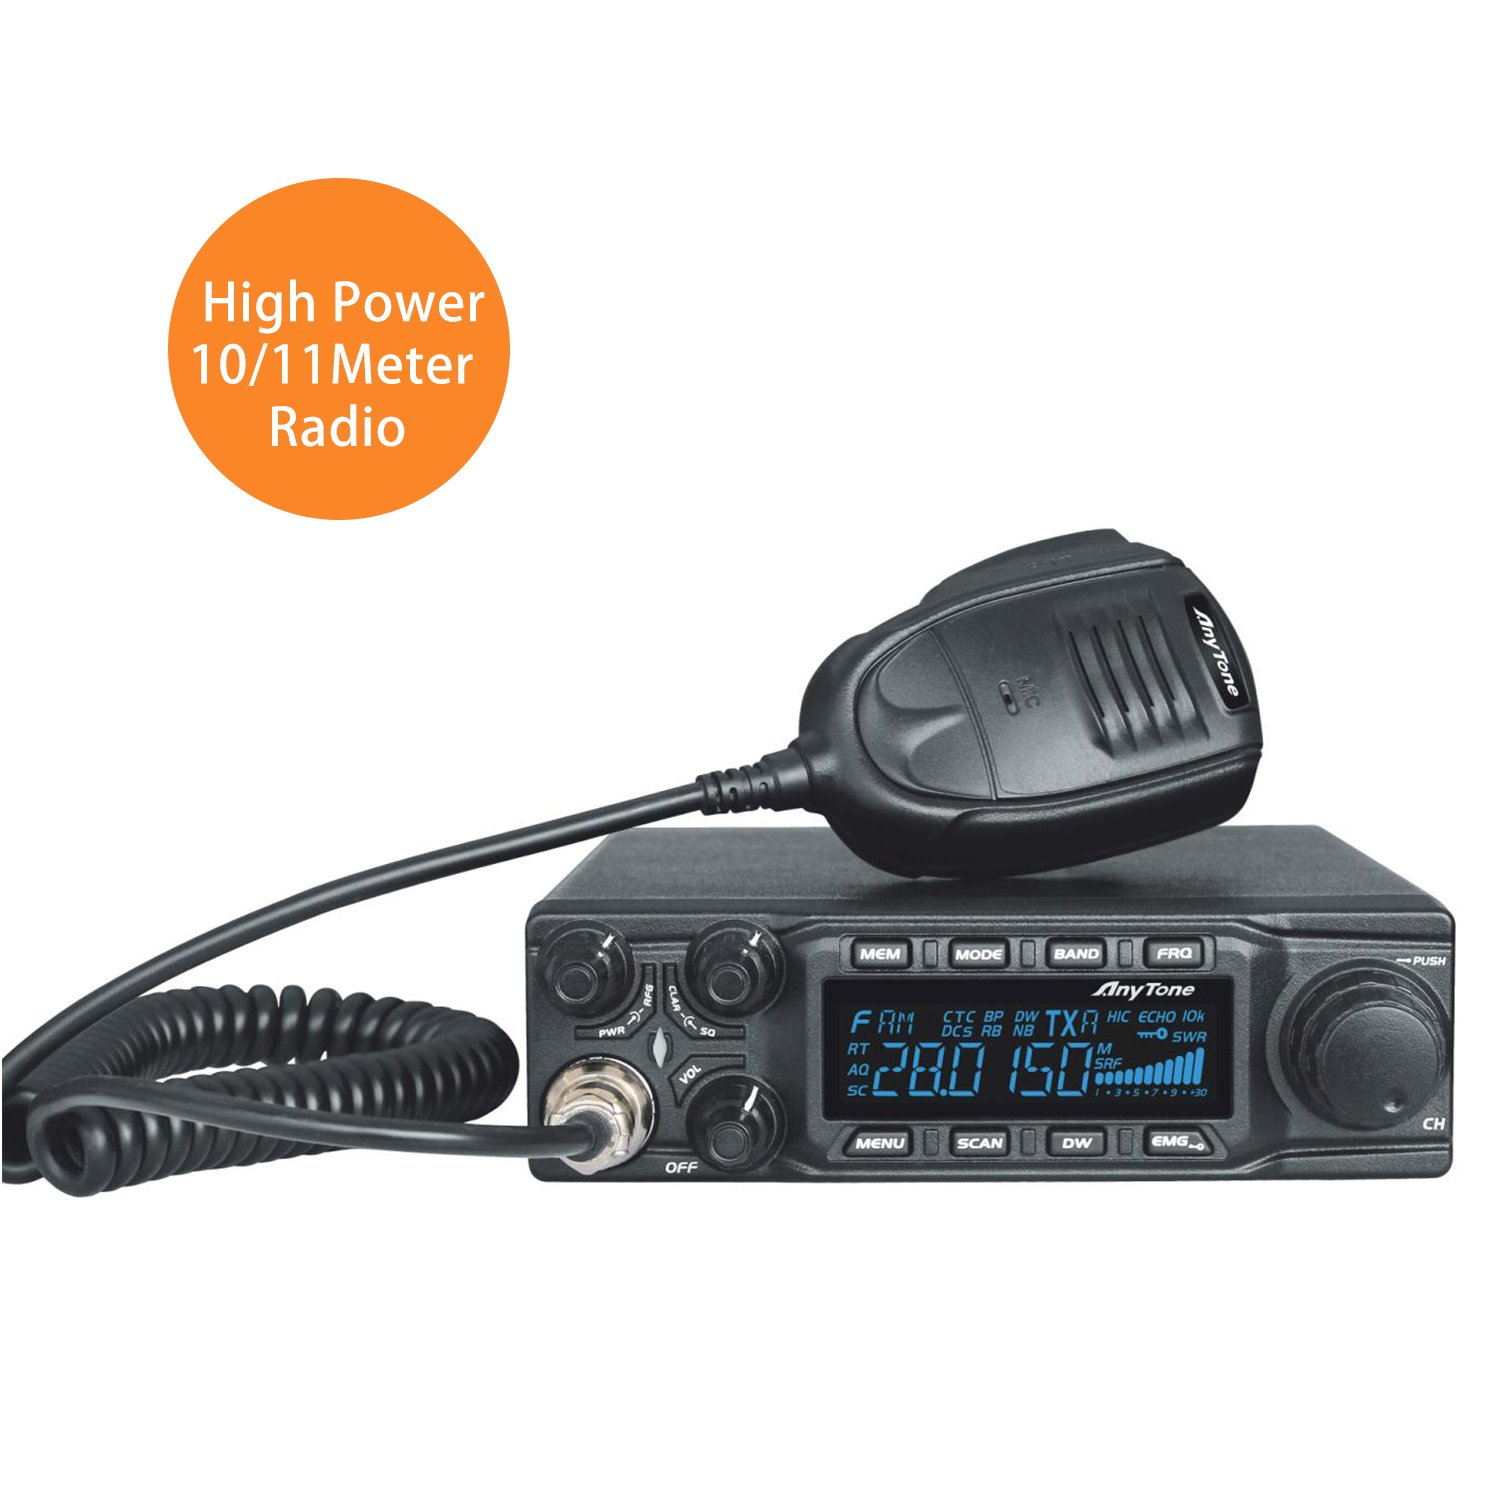 AnyTone AT-6666 CB Mobile Radio/Transceiver 10 Meter Radio wth SSB/FM/ AM /PA mode, Frequency 28-29.7MHZ 40 CH,high Power Output 15W AM,45W FM,60W SSB(PEP)